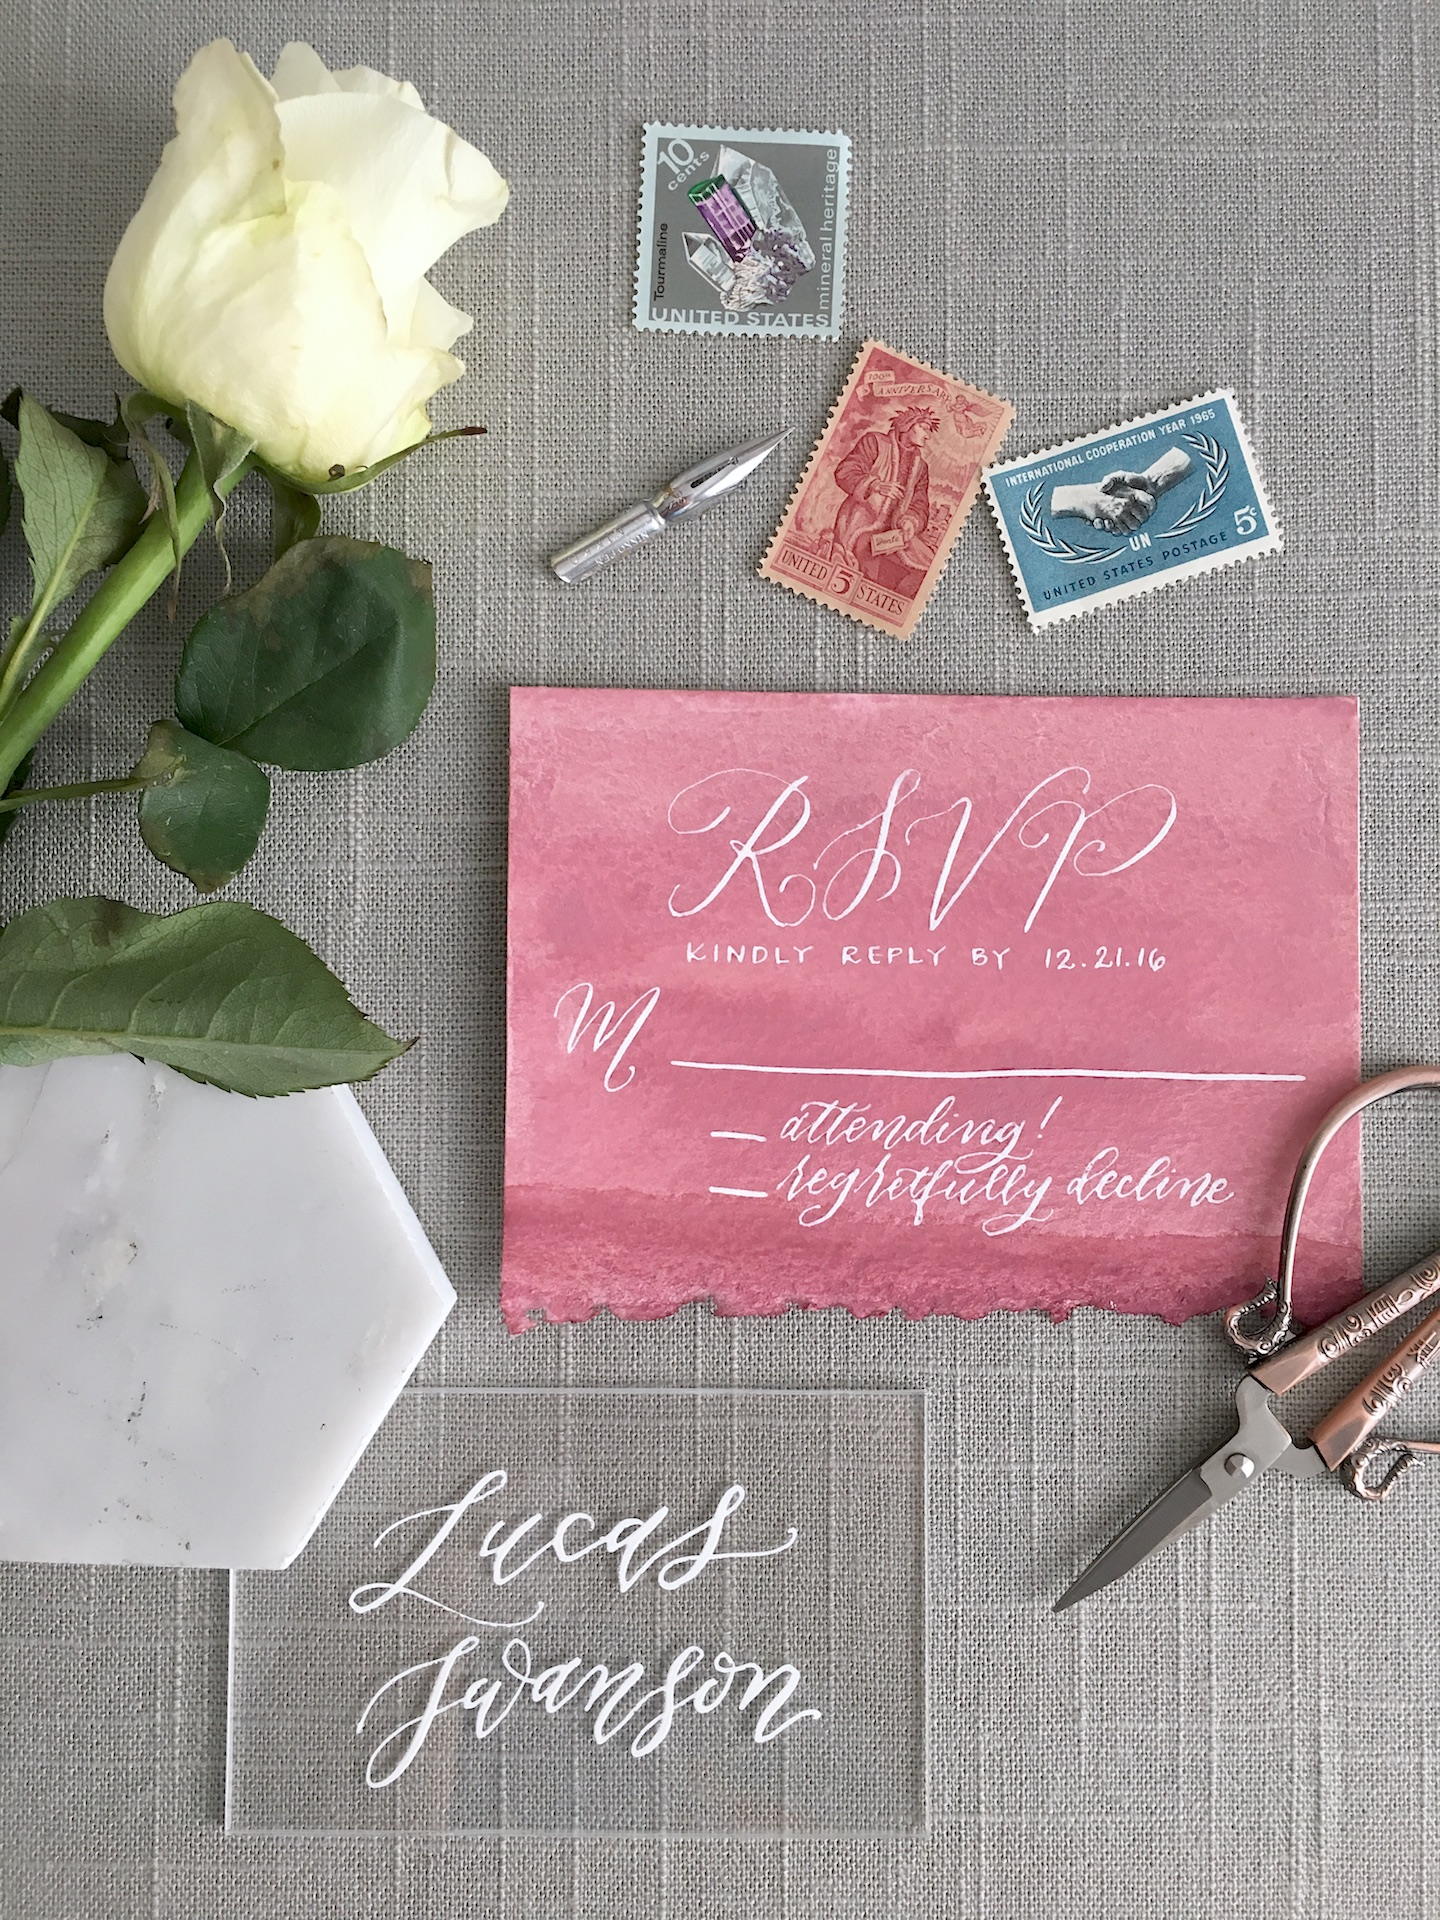 This is once again another example of a lovely RSVP card that I made for a styled shoot! RSVP cards for styled shoots tend to be more simplified than they need to be, but they are definitely lovely to look at! I did this one with a watercolor wash and PH Martin's Bleedproof White Ink.